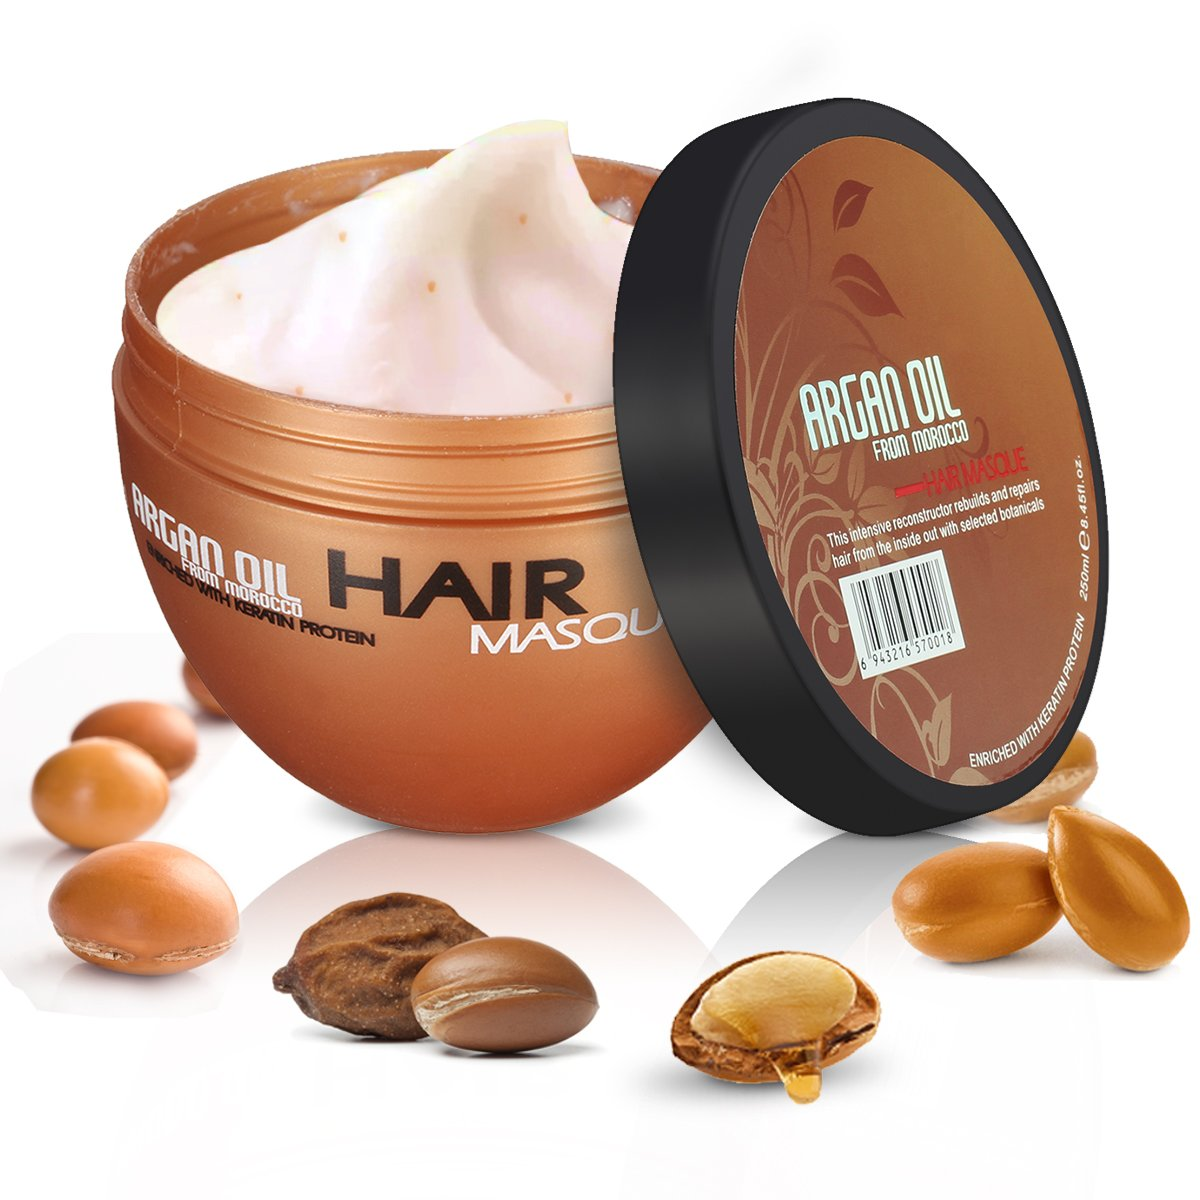 Argan Oil Hair Mask Conditioner for Intensive Hair Treatment with Argan Oil and Almond Oil Pack NICOOL